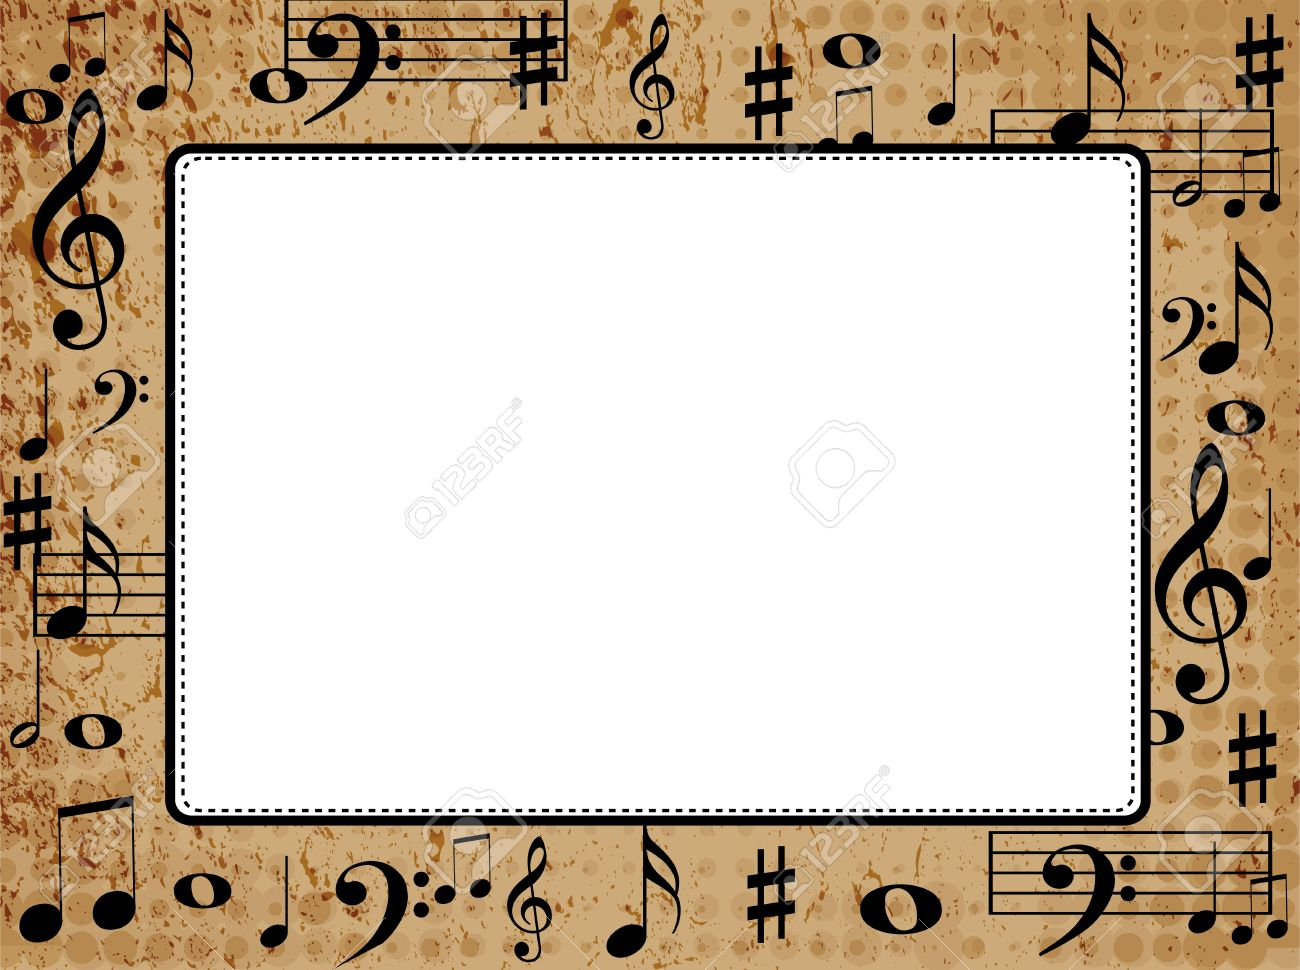 picture frame with music images craft decoration ideas picture frame with music image collections craft decoration - Music Picture Frame